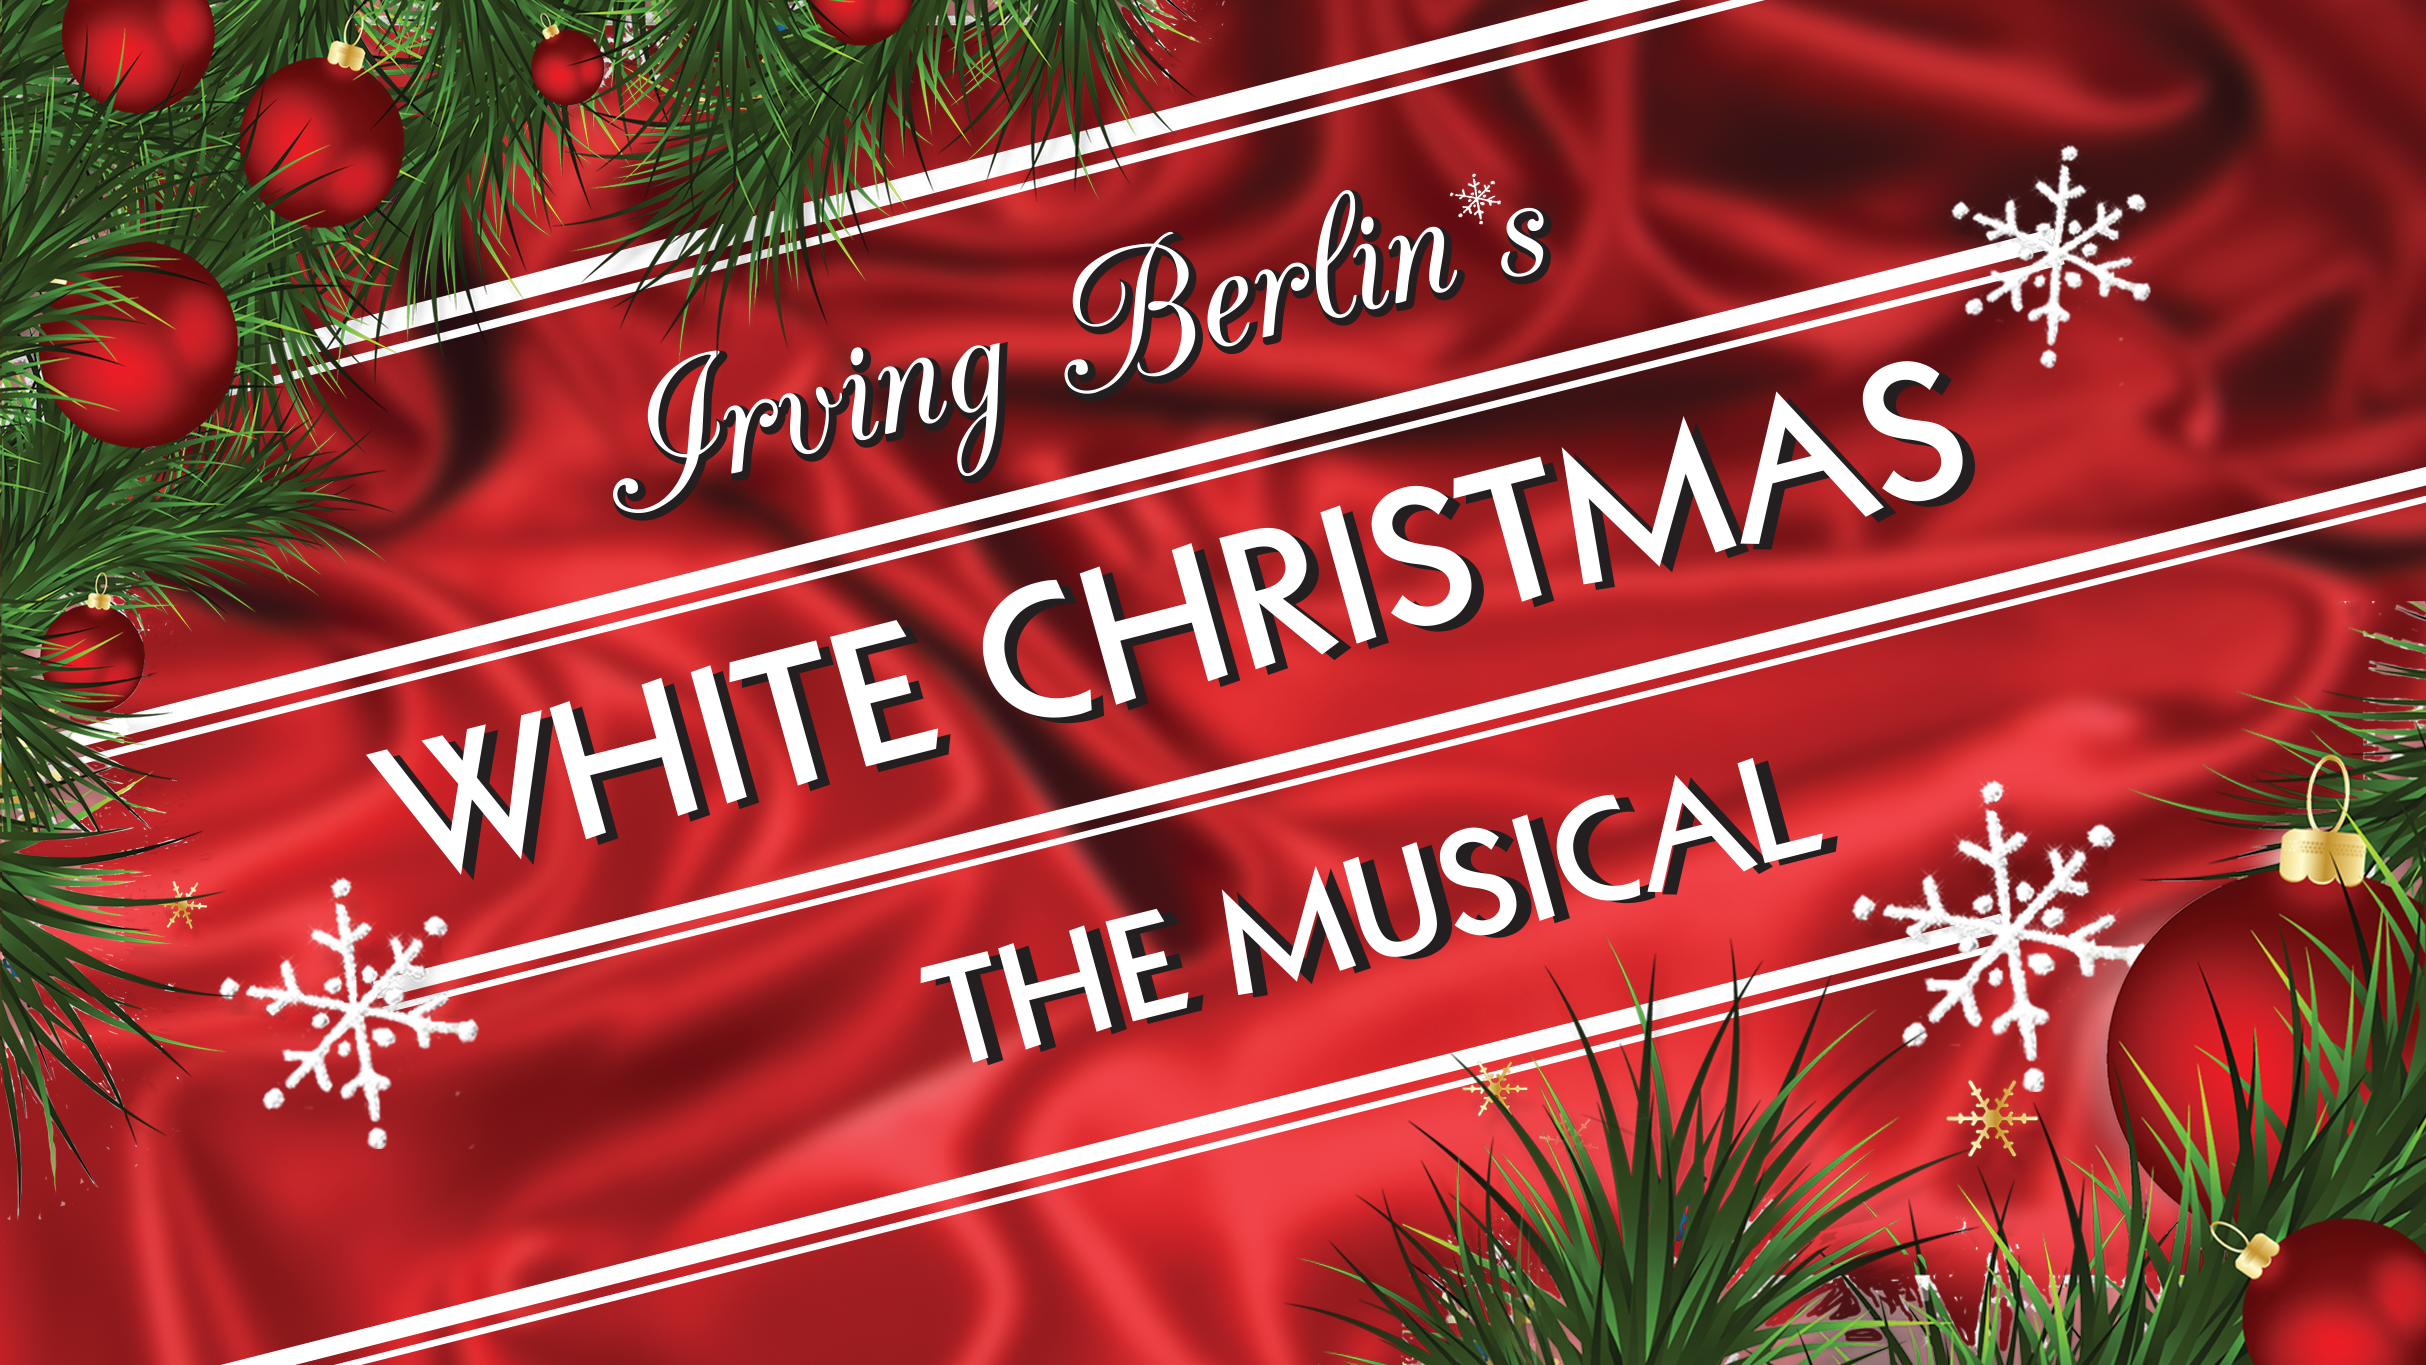 White Christmas Musical.Celebrate The Holidays At Pechanga With Irving Berlin S